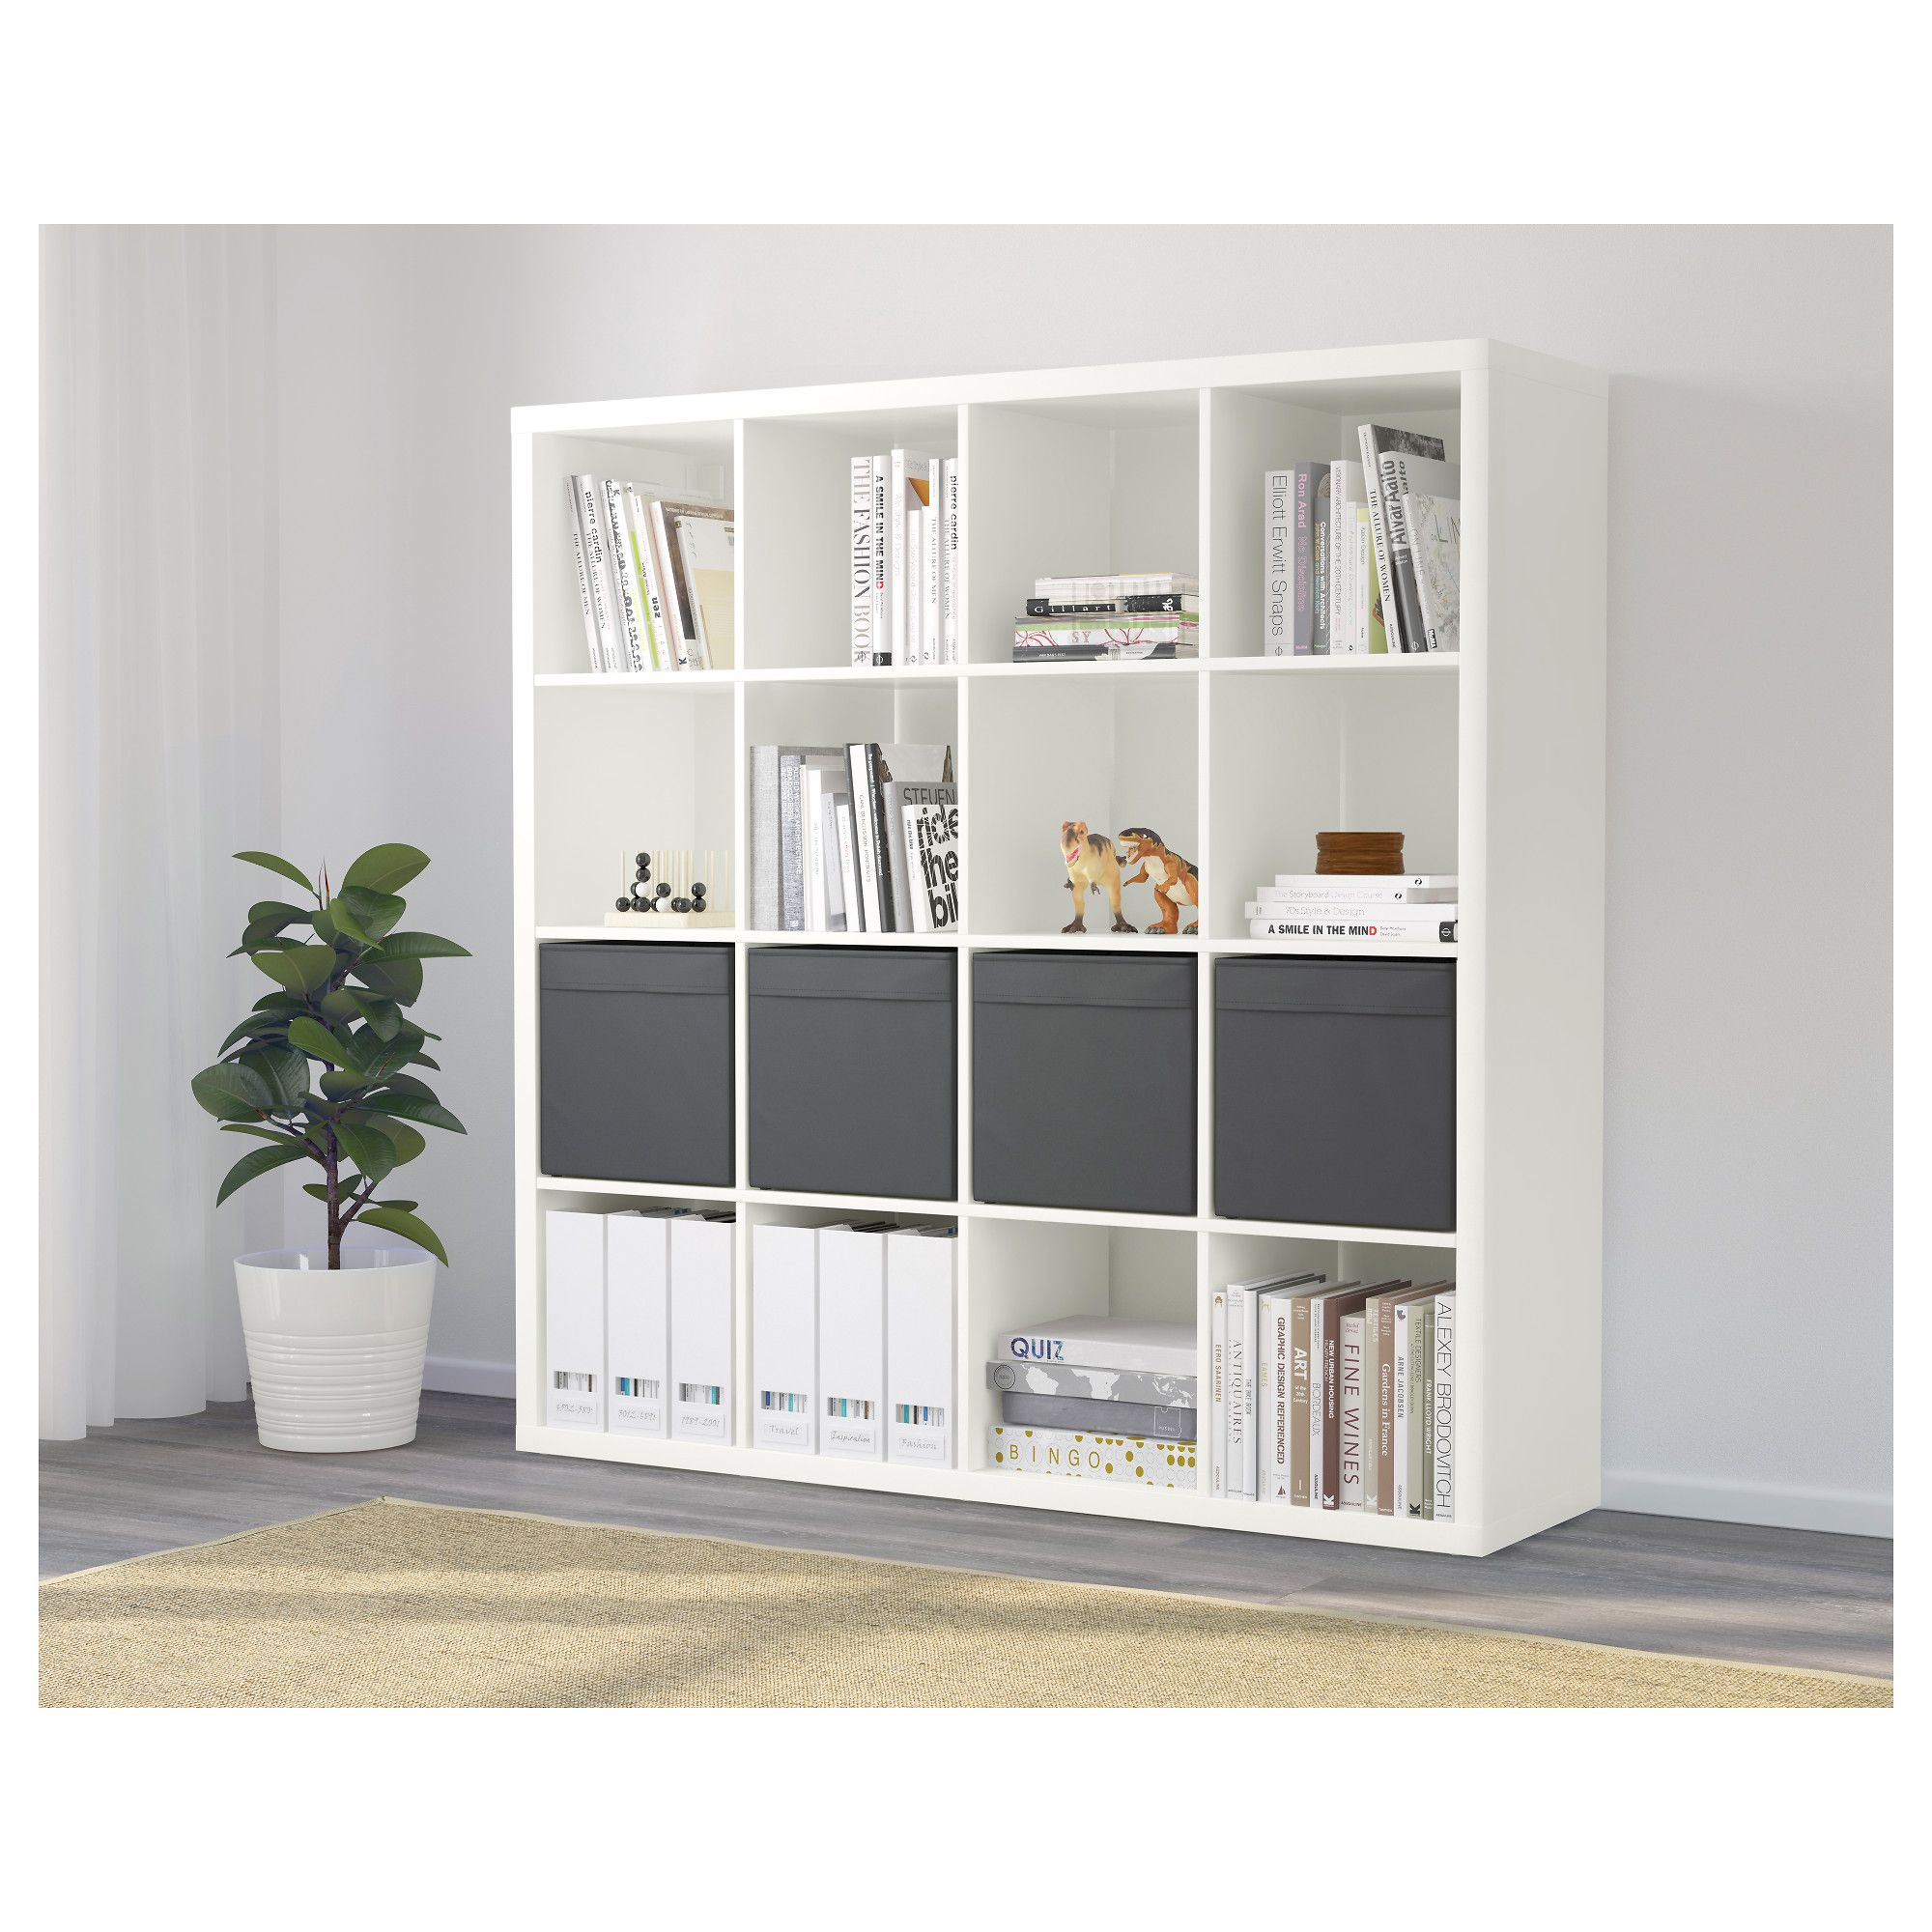 ikea kallax shelf unit with 4 inserts white in 2019 products kallax shelf unit ikea. Black Bedroom Furniture Sets. Home Design Ideas